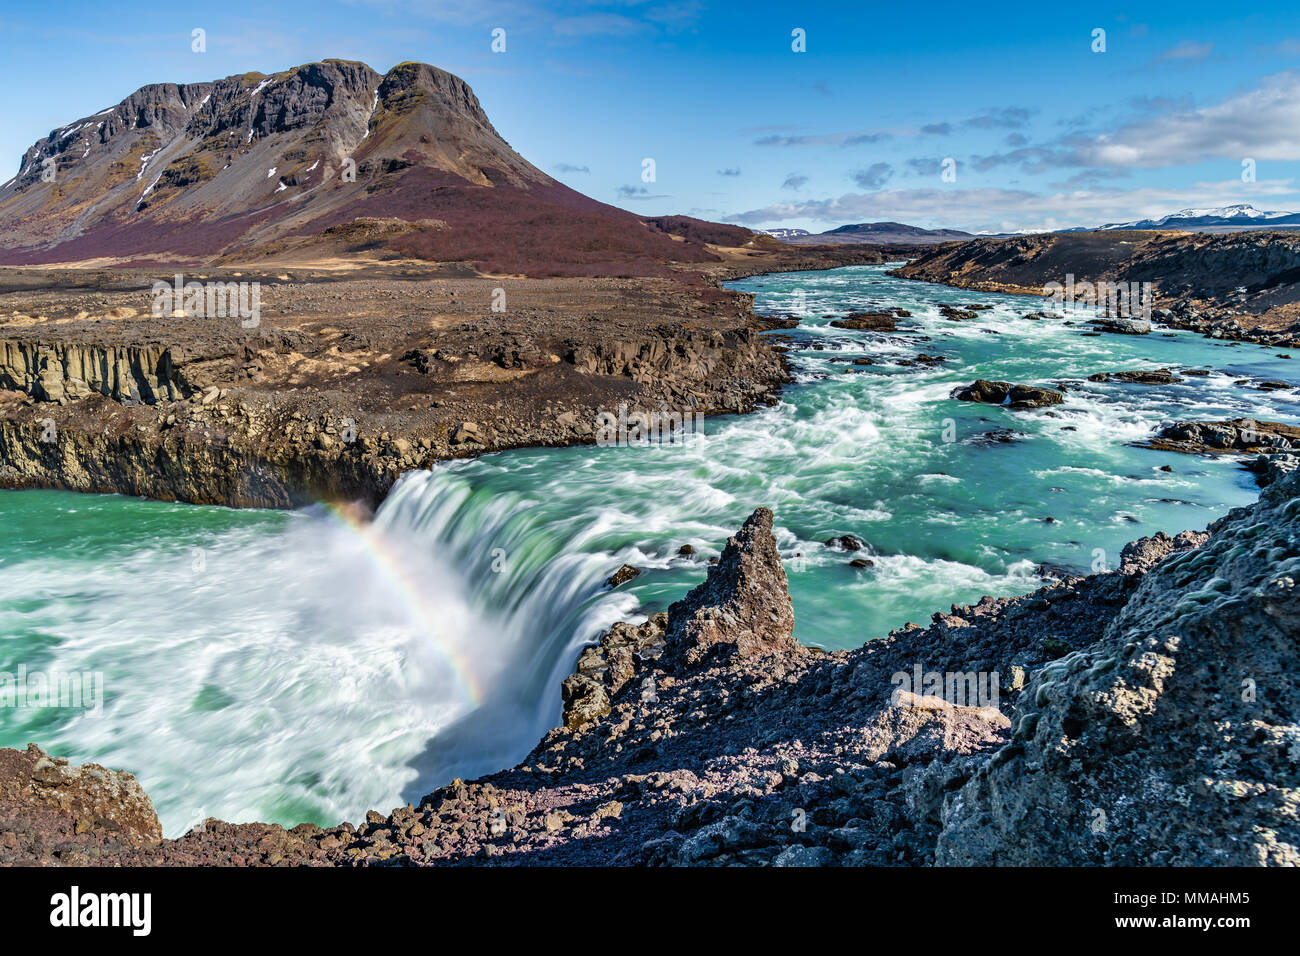 Thieves Waterfall, Iceland - Stock Image